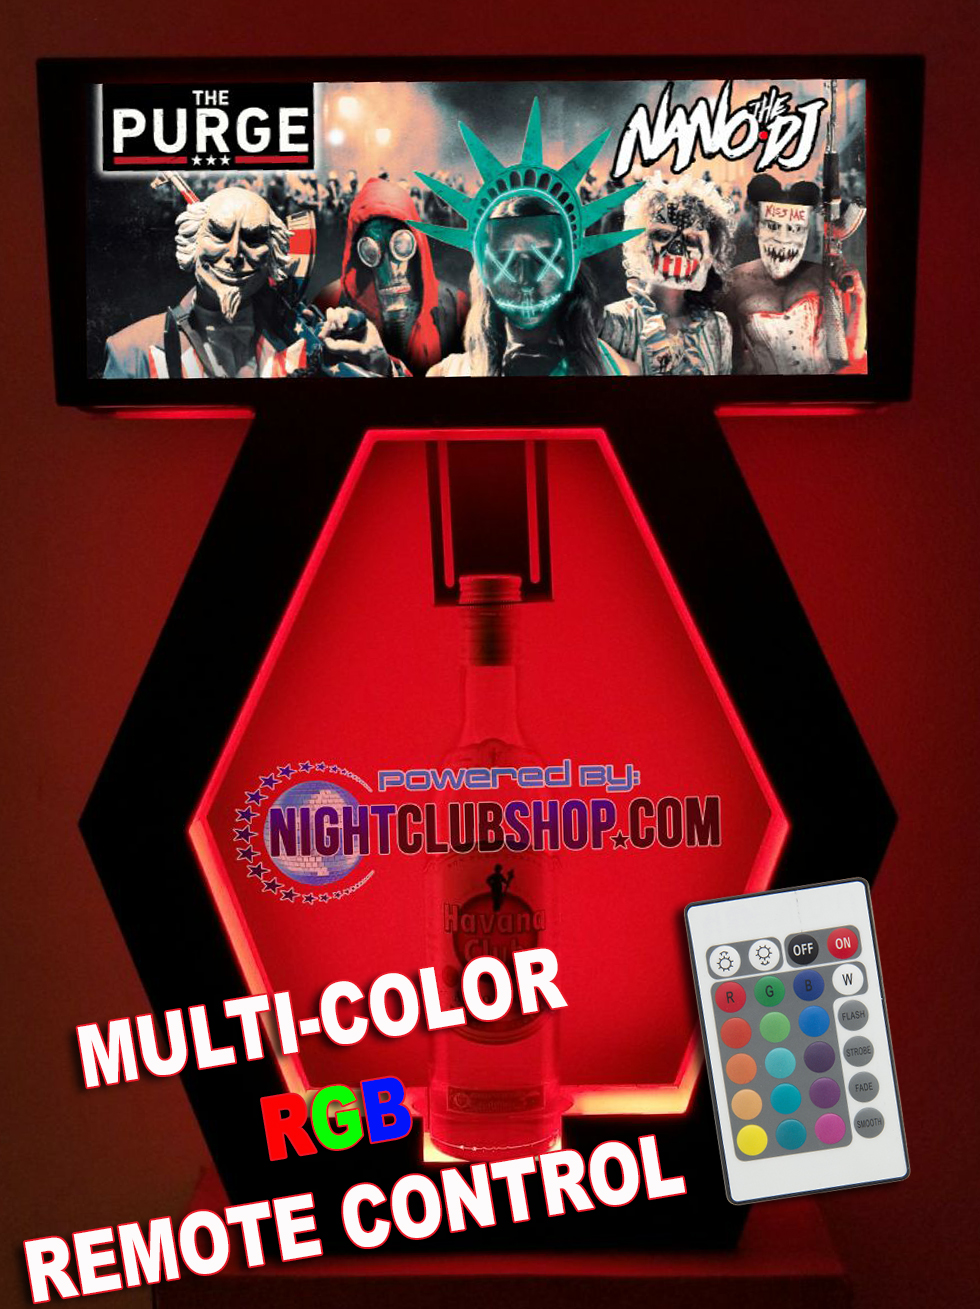 rgb-led-champagne-750-bottle-service-name-changer-birthday-event-venue-logo-reserved-tray-caddie-presenter-interchangeable-nightclubshop.jpg